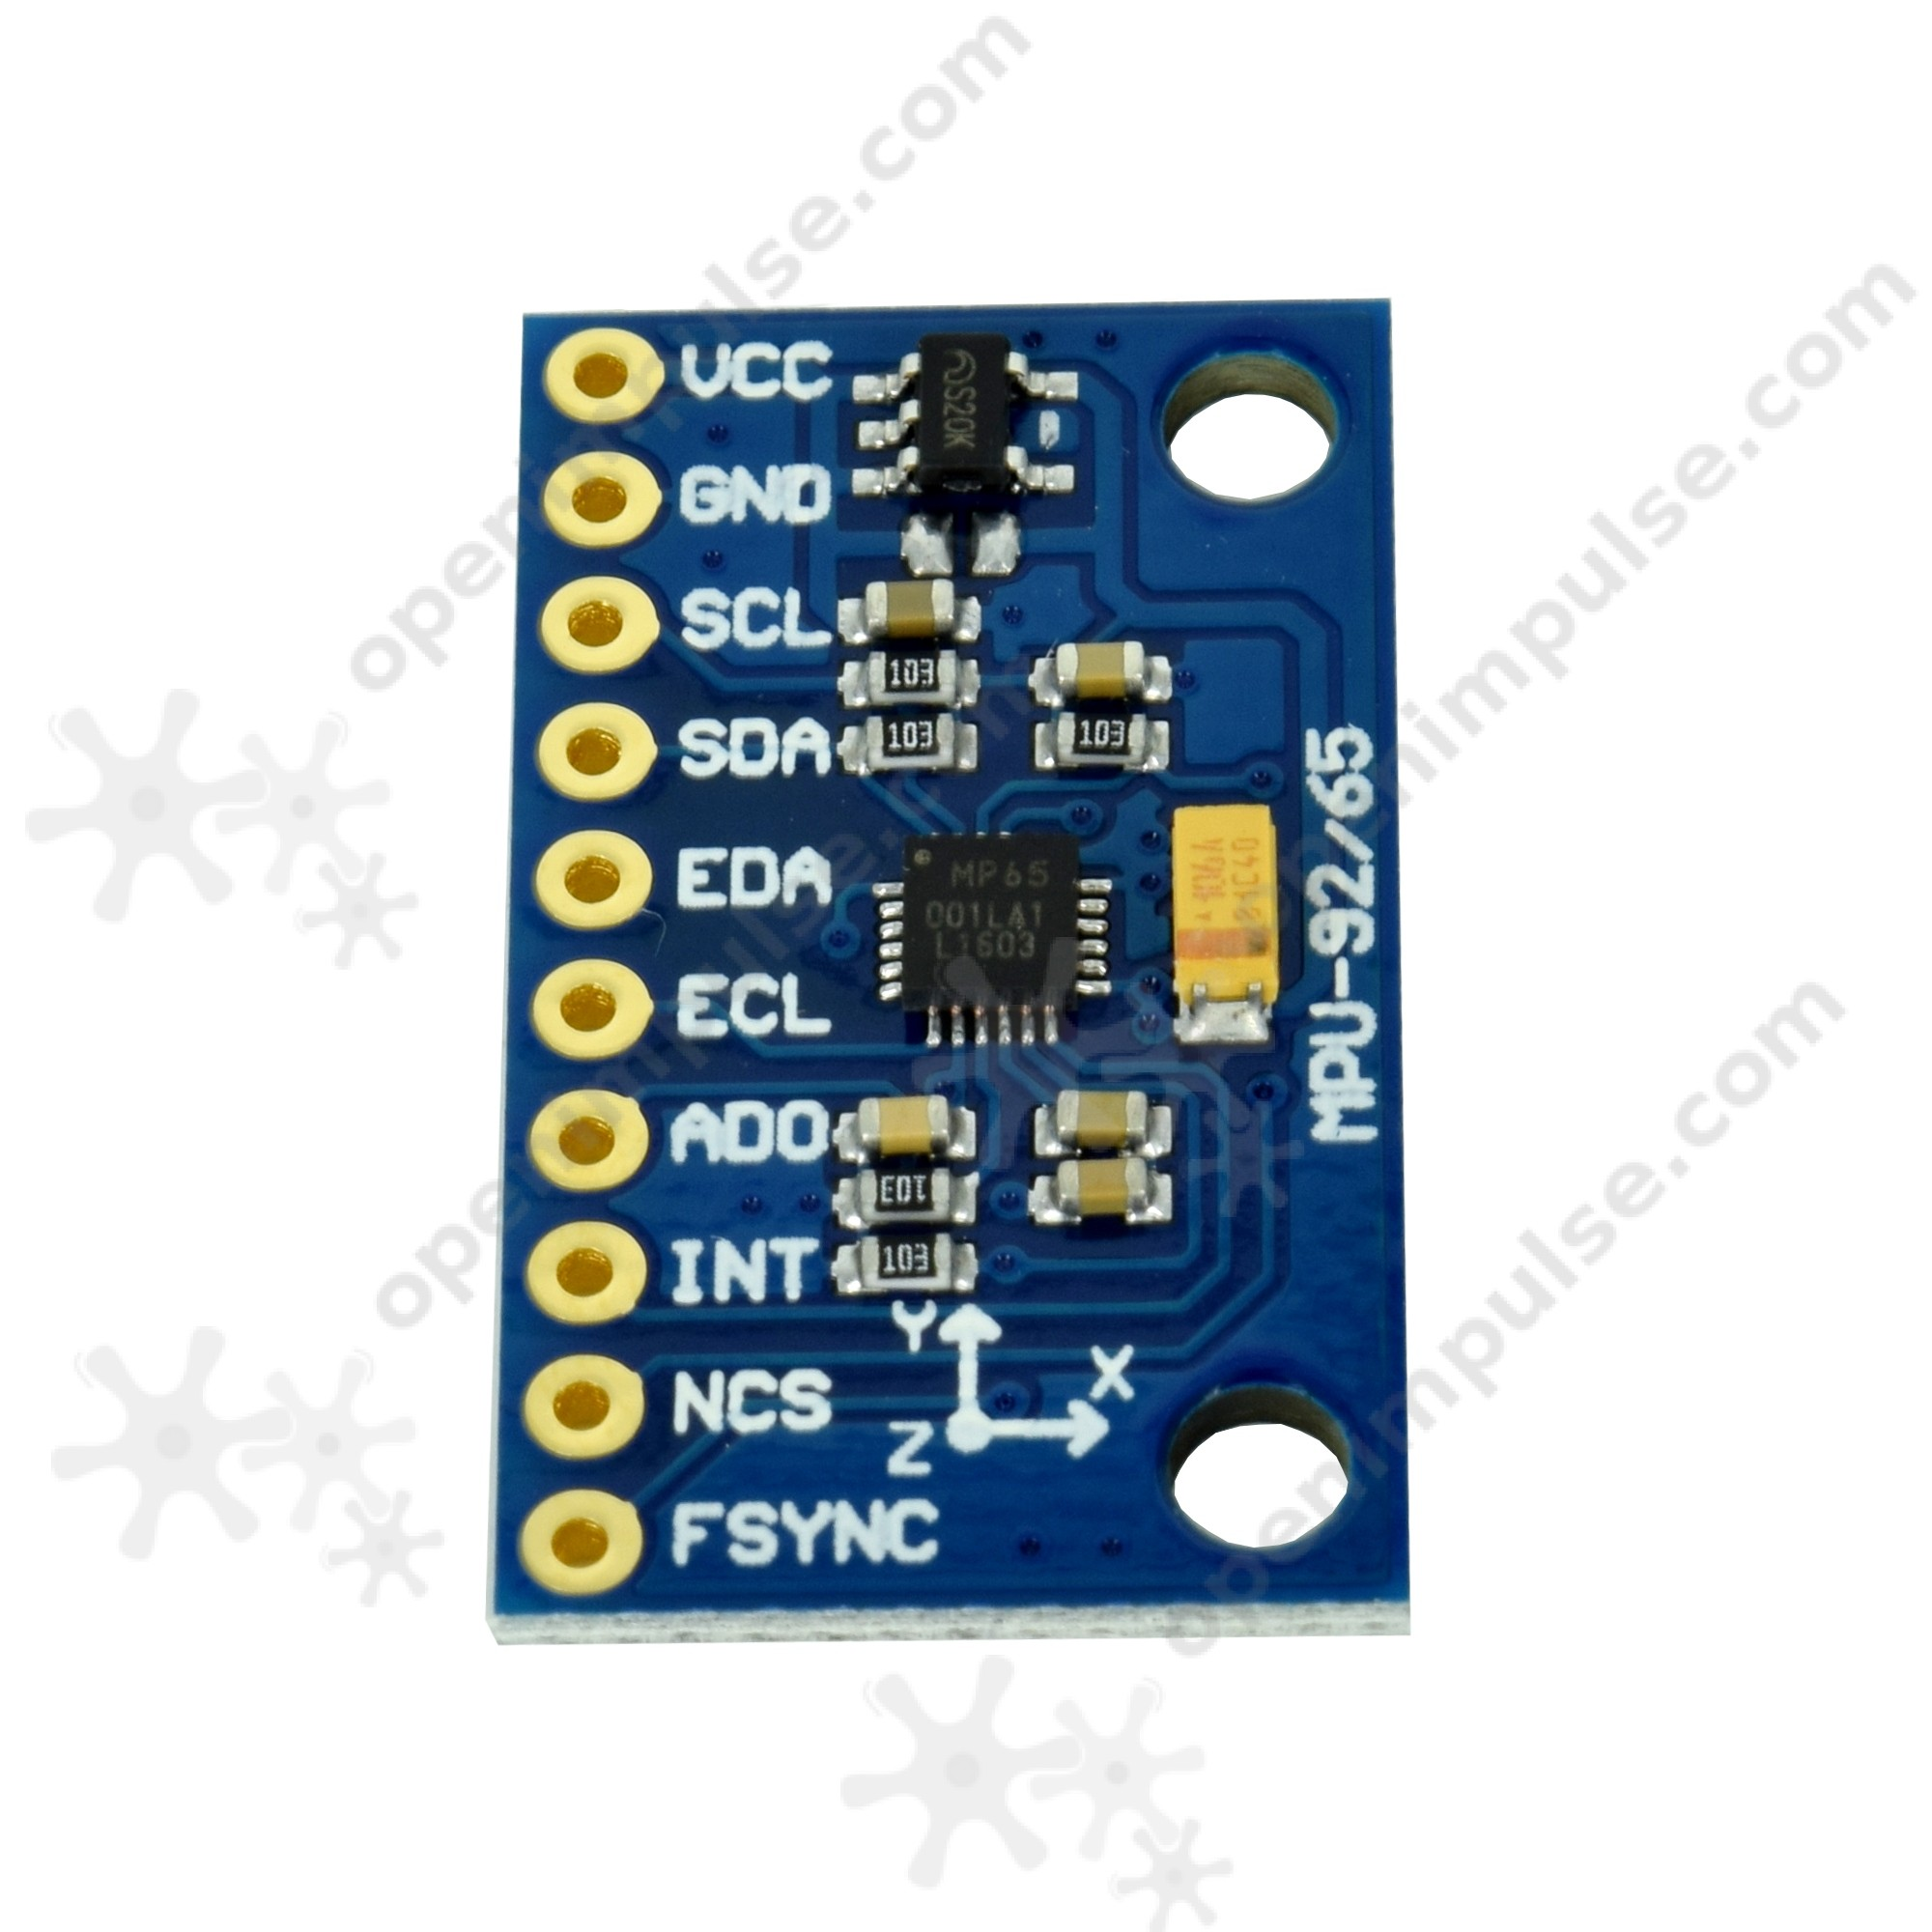 GY-MPU6500 Accelerometer and Gyroscope Module | Open